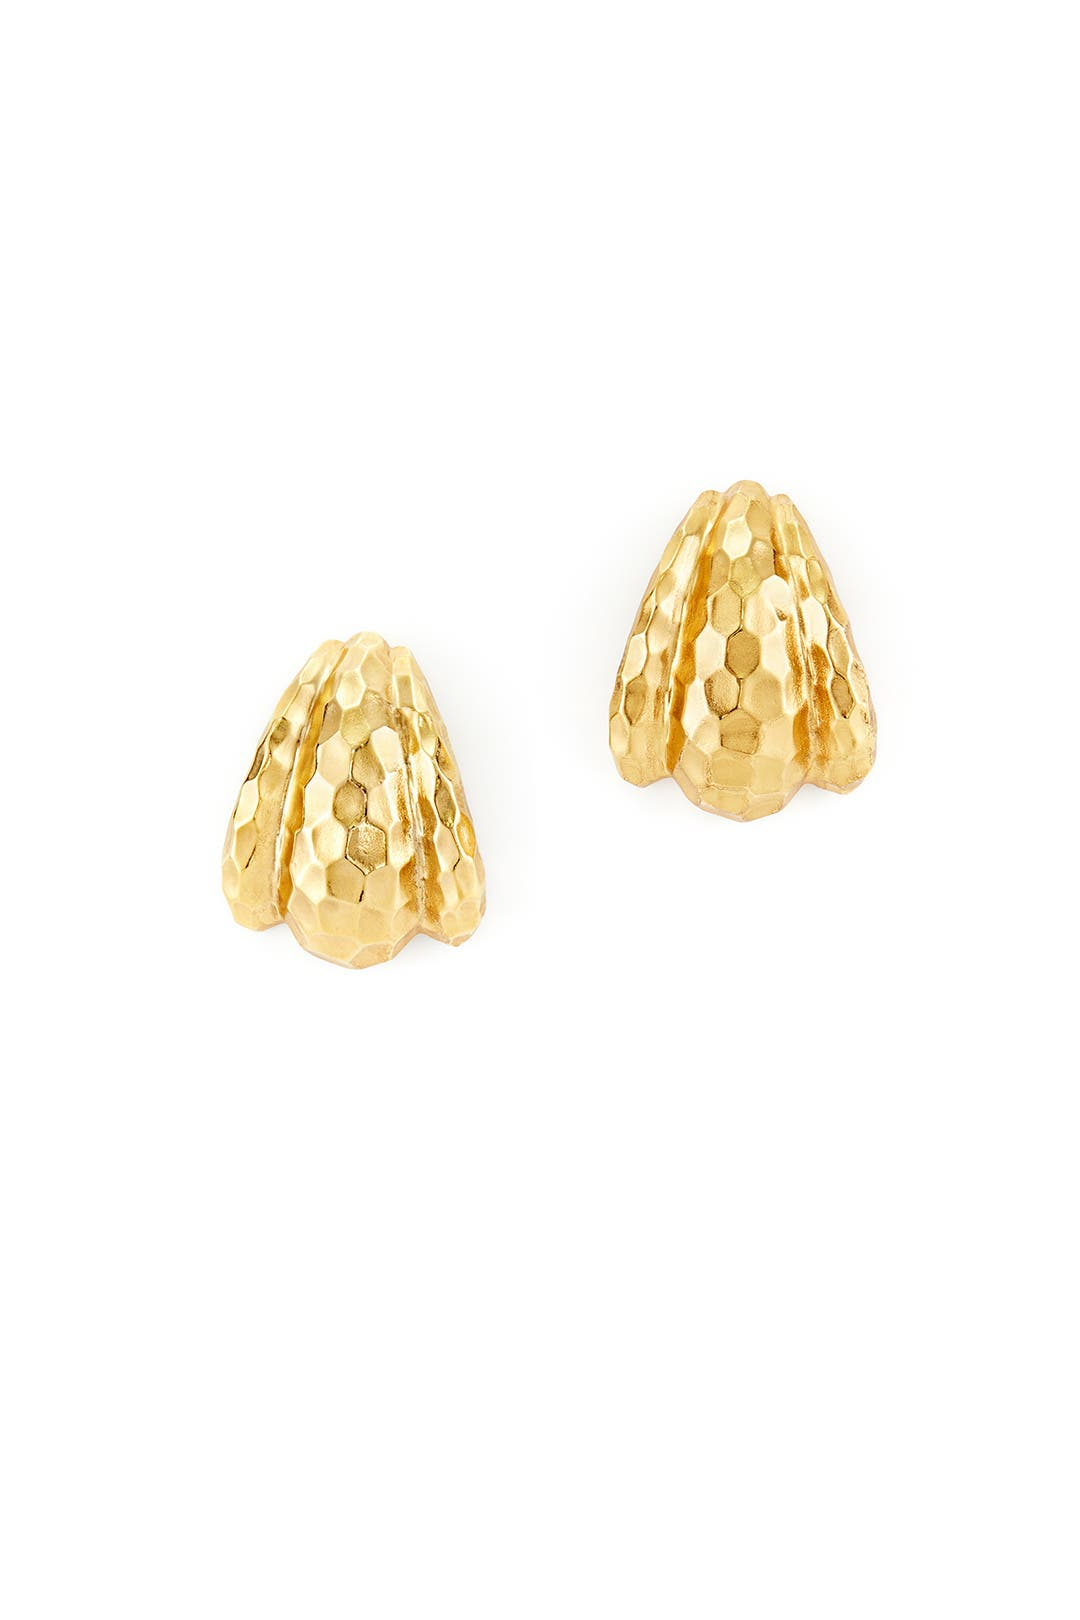 Honeycomb Stud Earrings by Ben-Amun